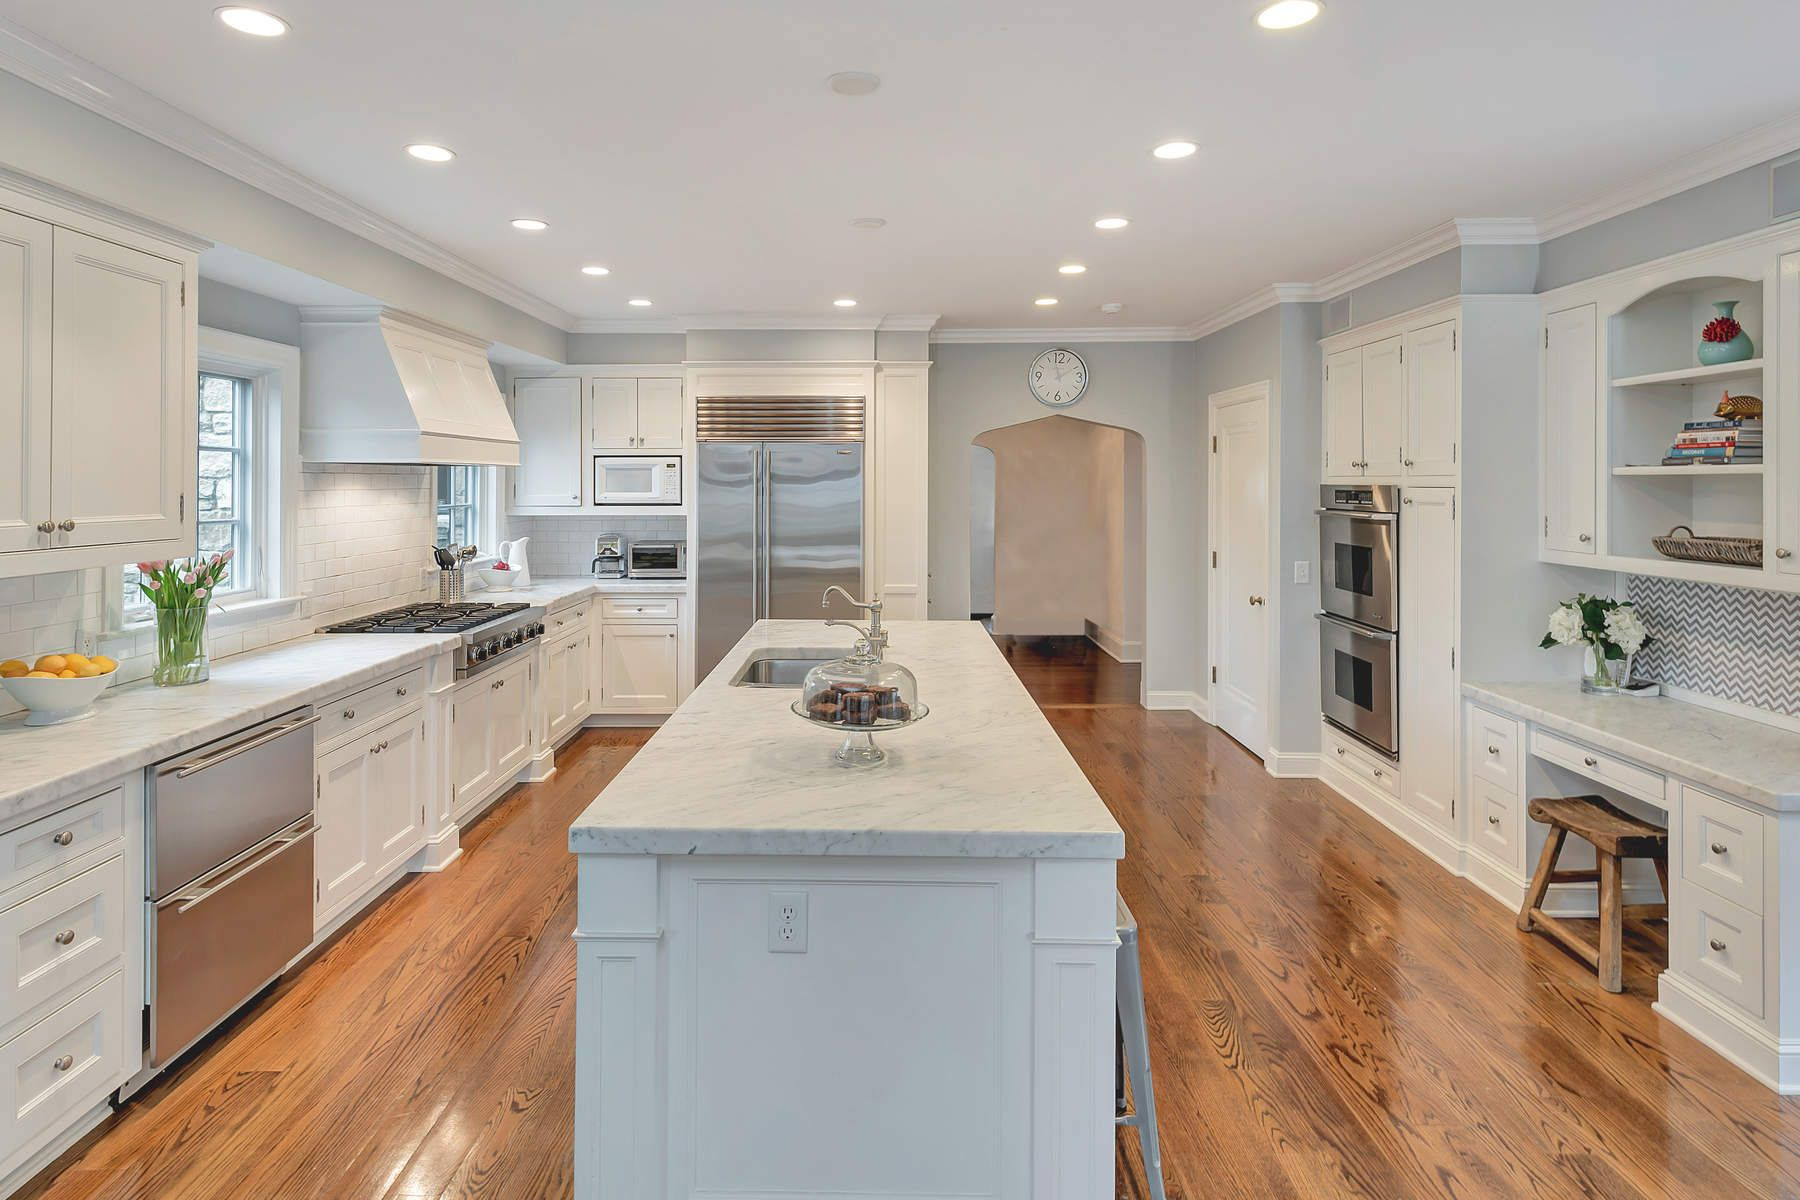 Single Family Home for Sale at 1 Old Club House 1 Old Club House Road Old Greenwich, Connecticut 06870 United States